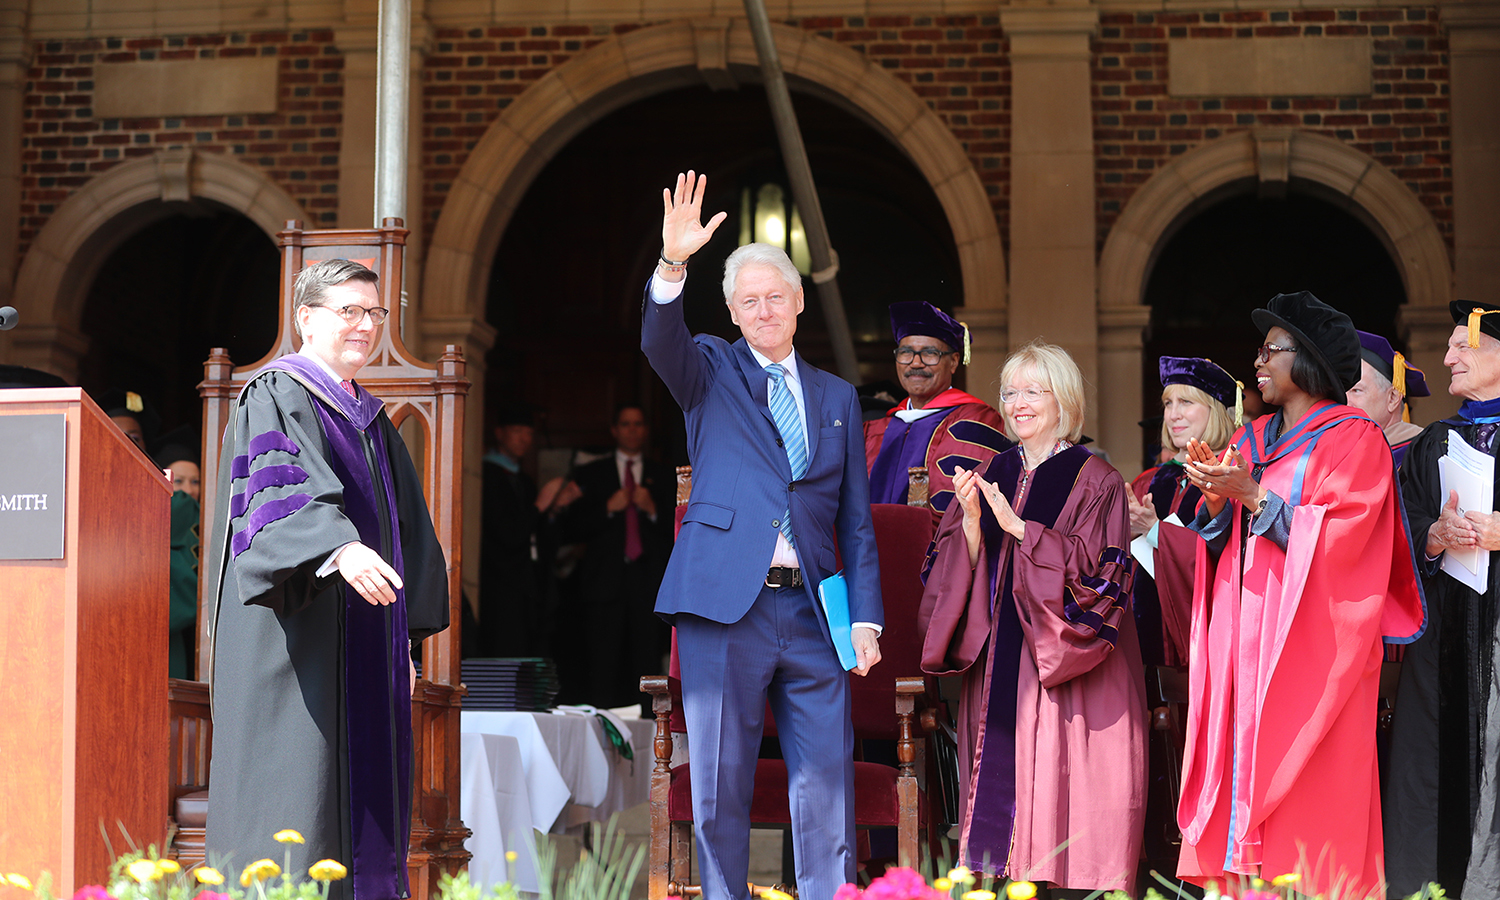 President Bill Clinton waves to the audience during Sunday's Commencement ceremony.